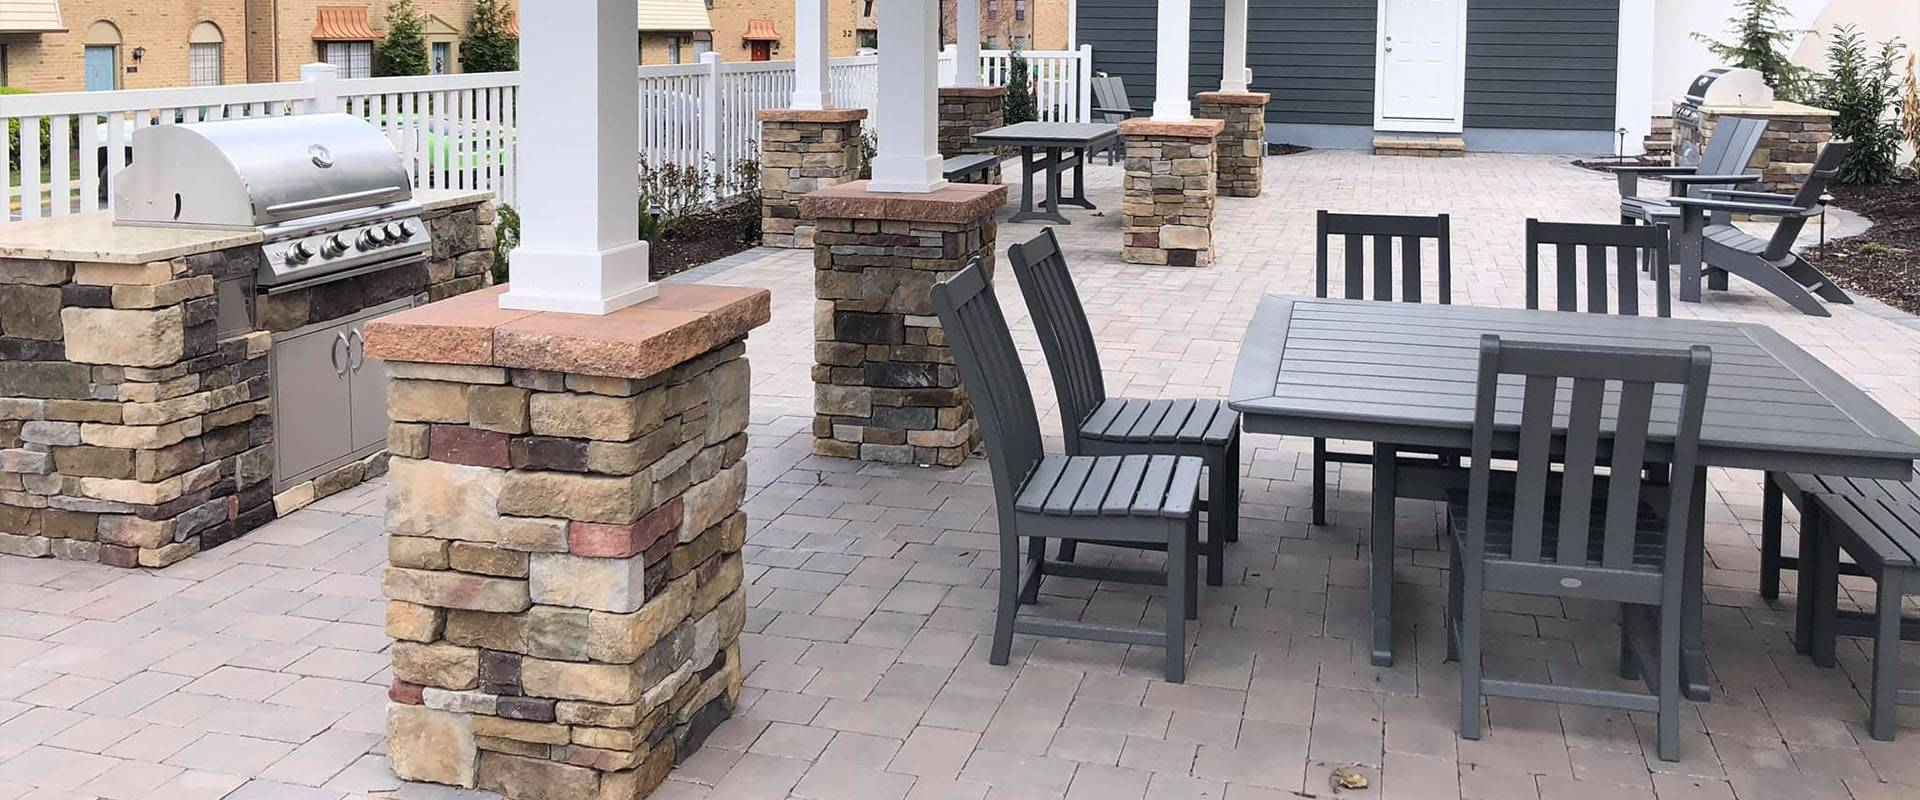 Commercial Hardscaping Installation